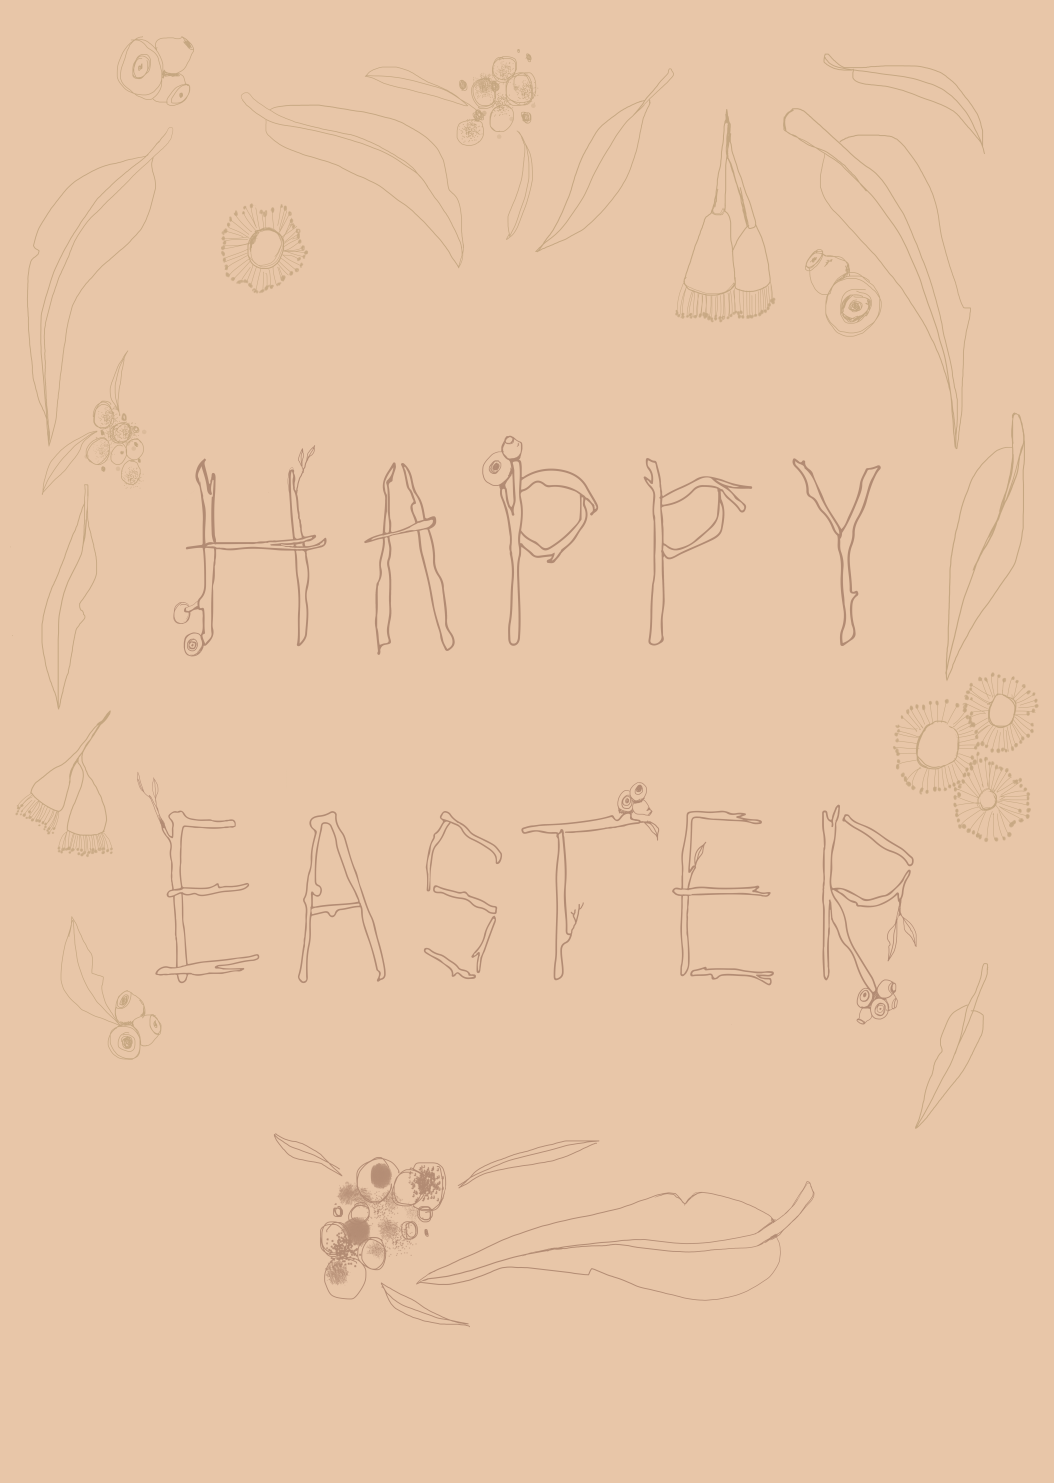 eastercard_2.png